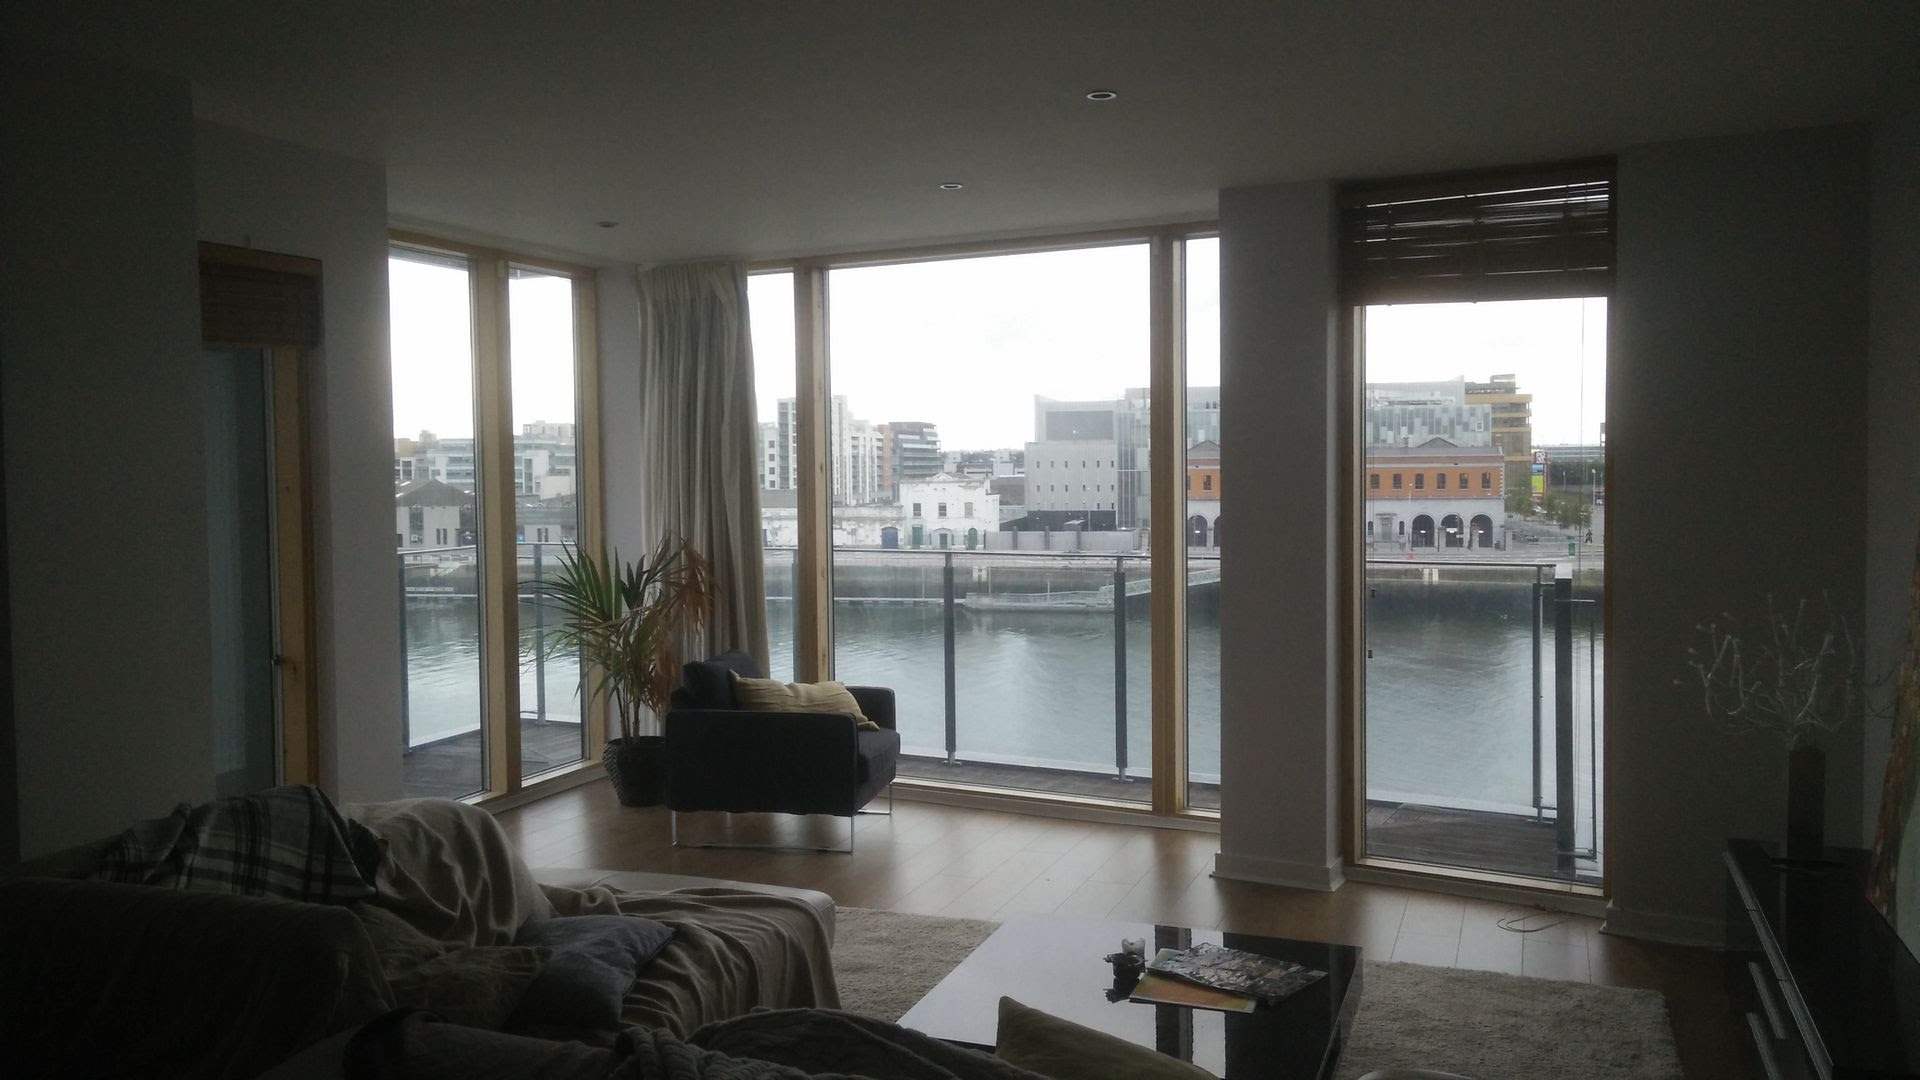 Dublin Airbnb: https://www.airbnb.ie/rooms/8604603 photo IMG_20151018_092125_zpsbyf1u7kf.jpg